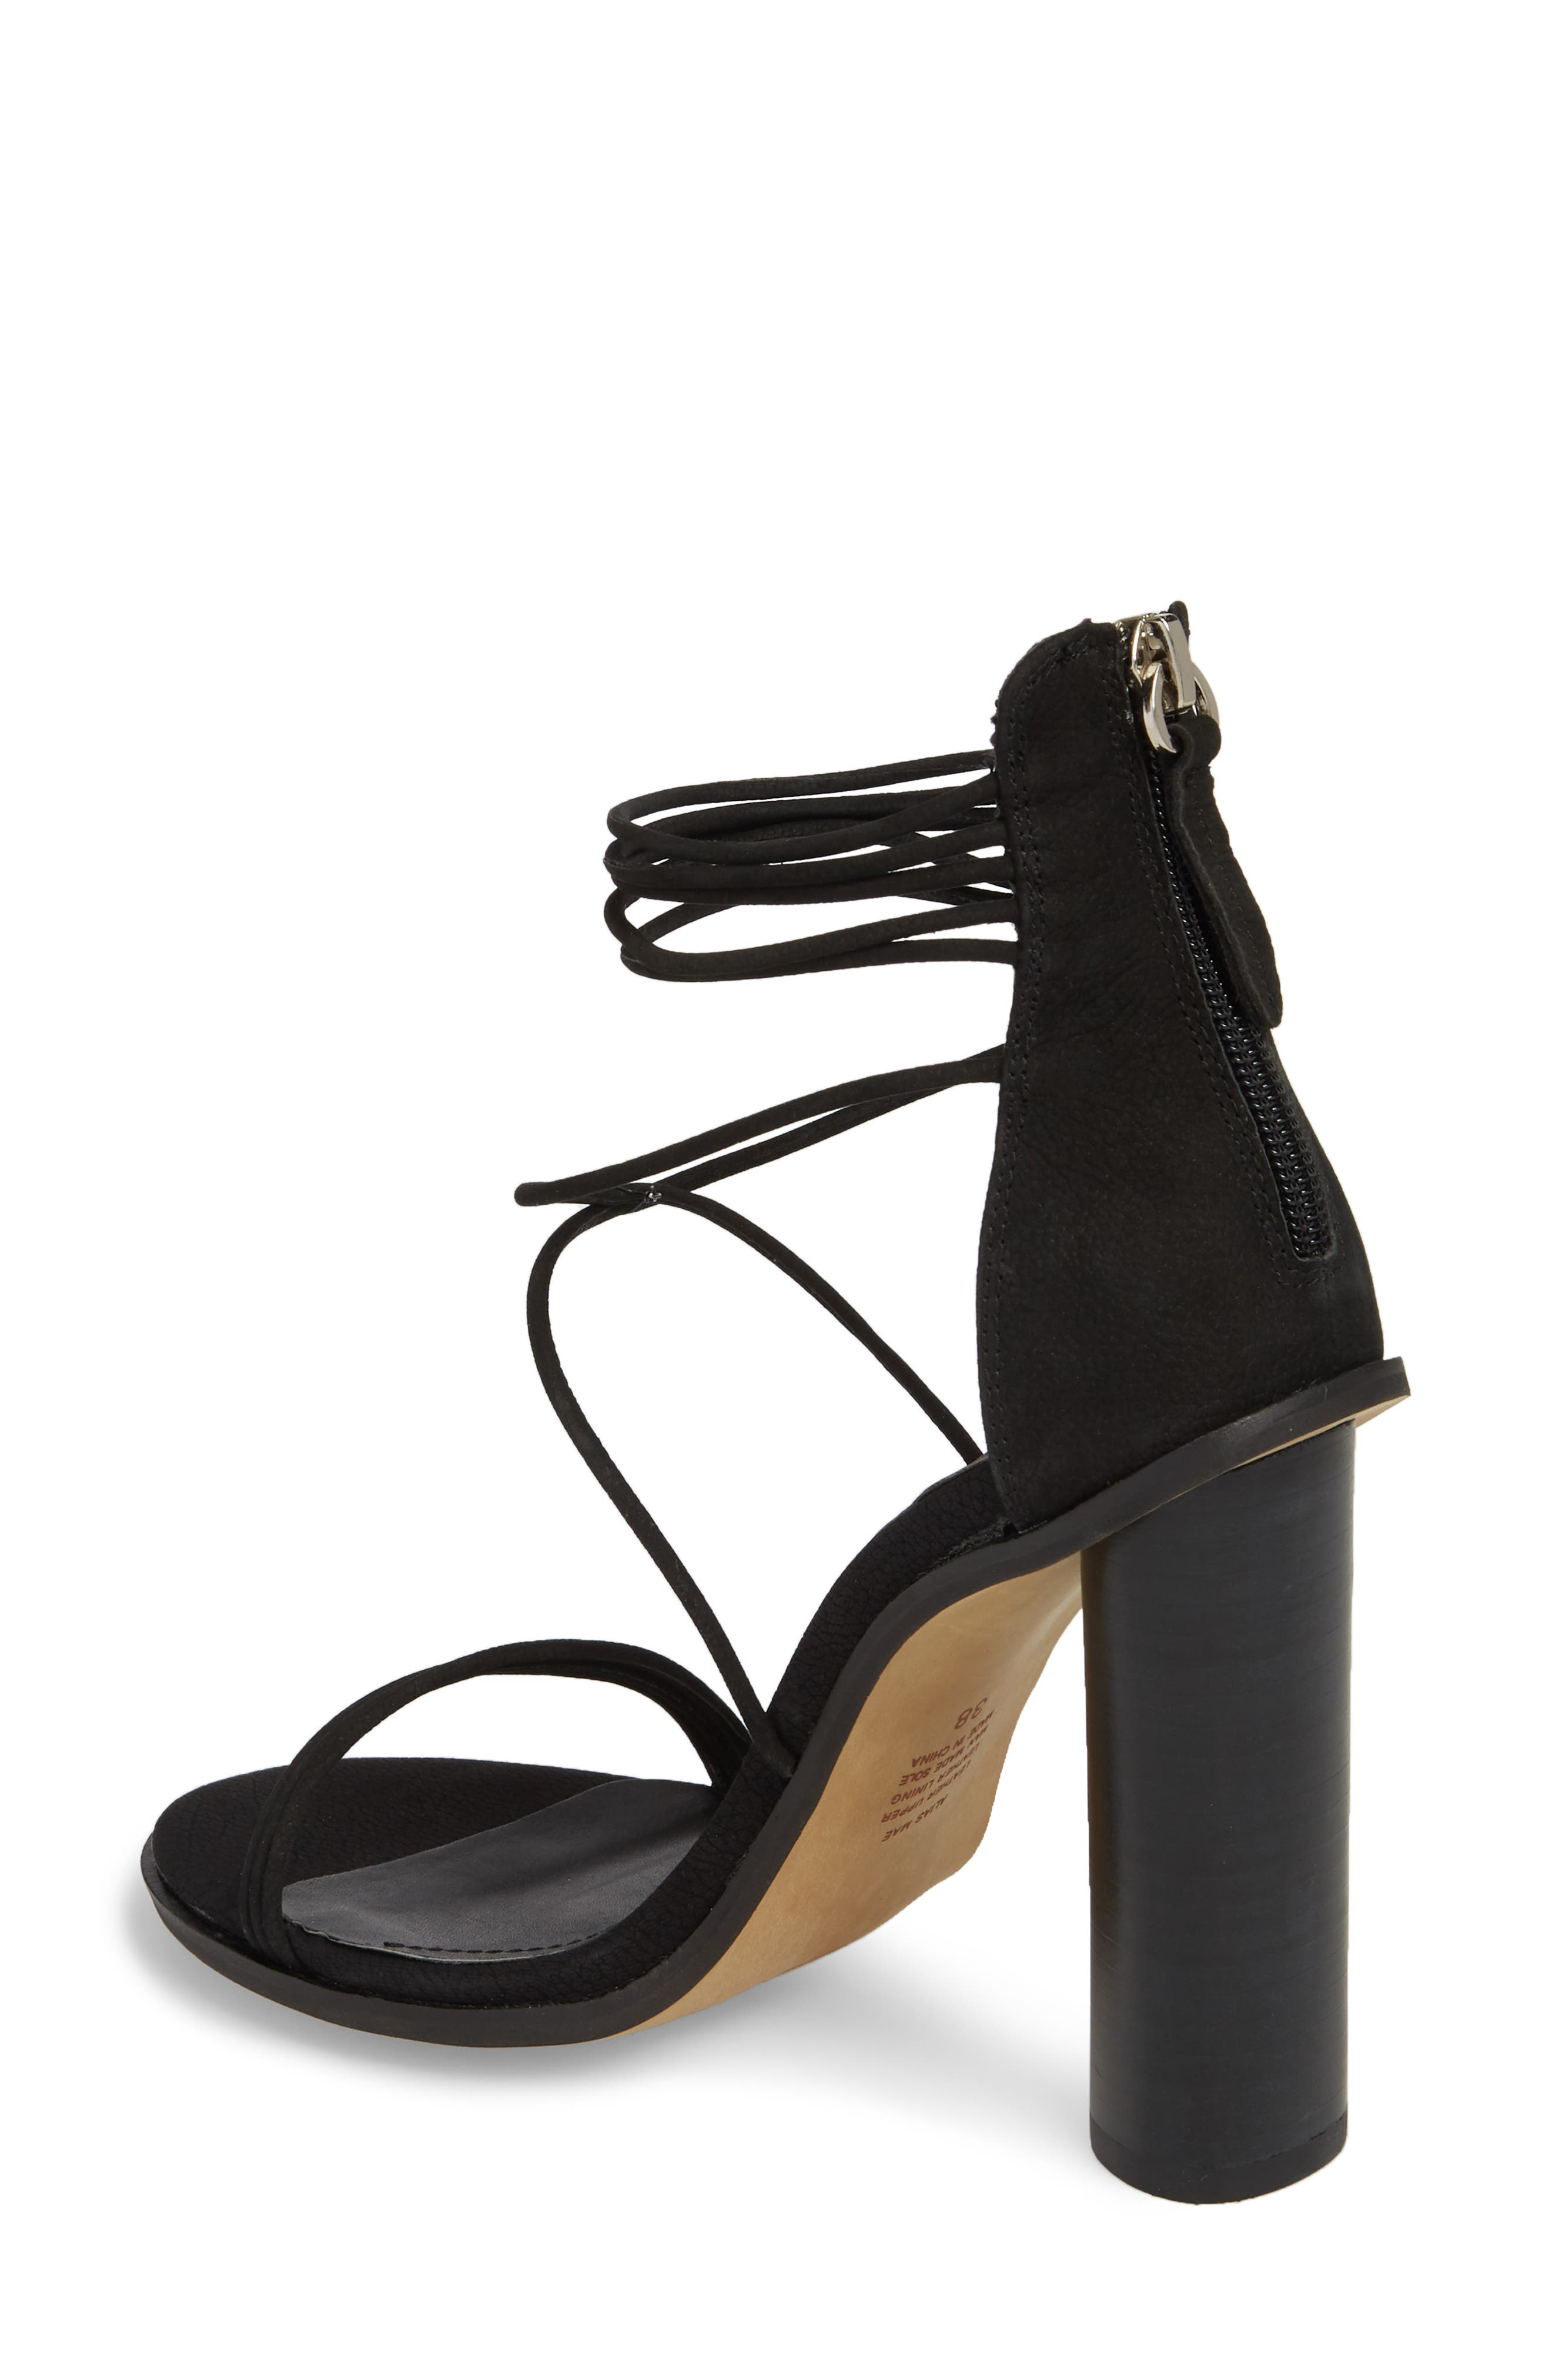 Aflux Tall Strappy Sandal,                             Alternate thumbnail 2, color,                             Black Nubuck Leather